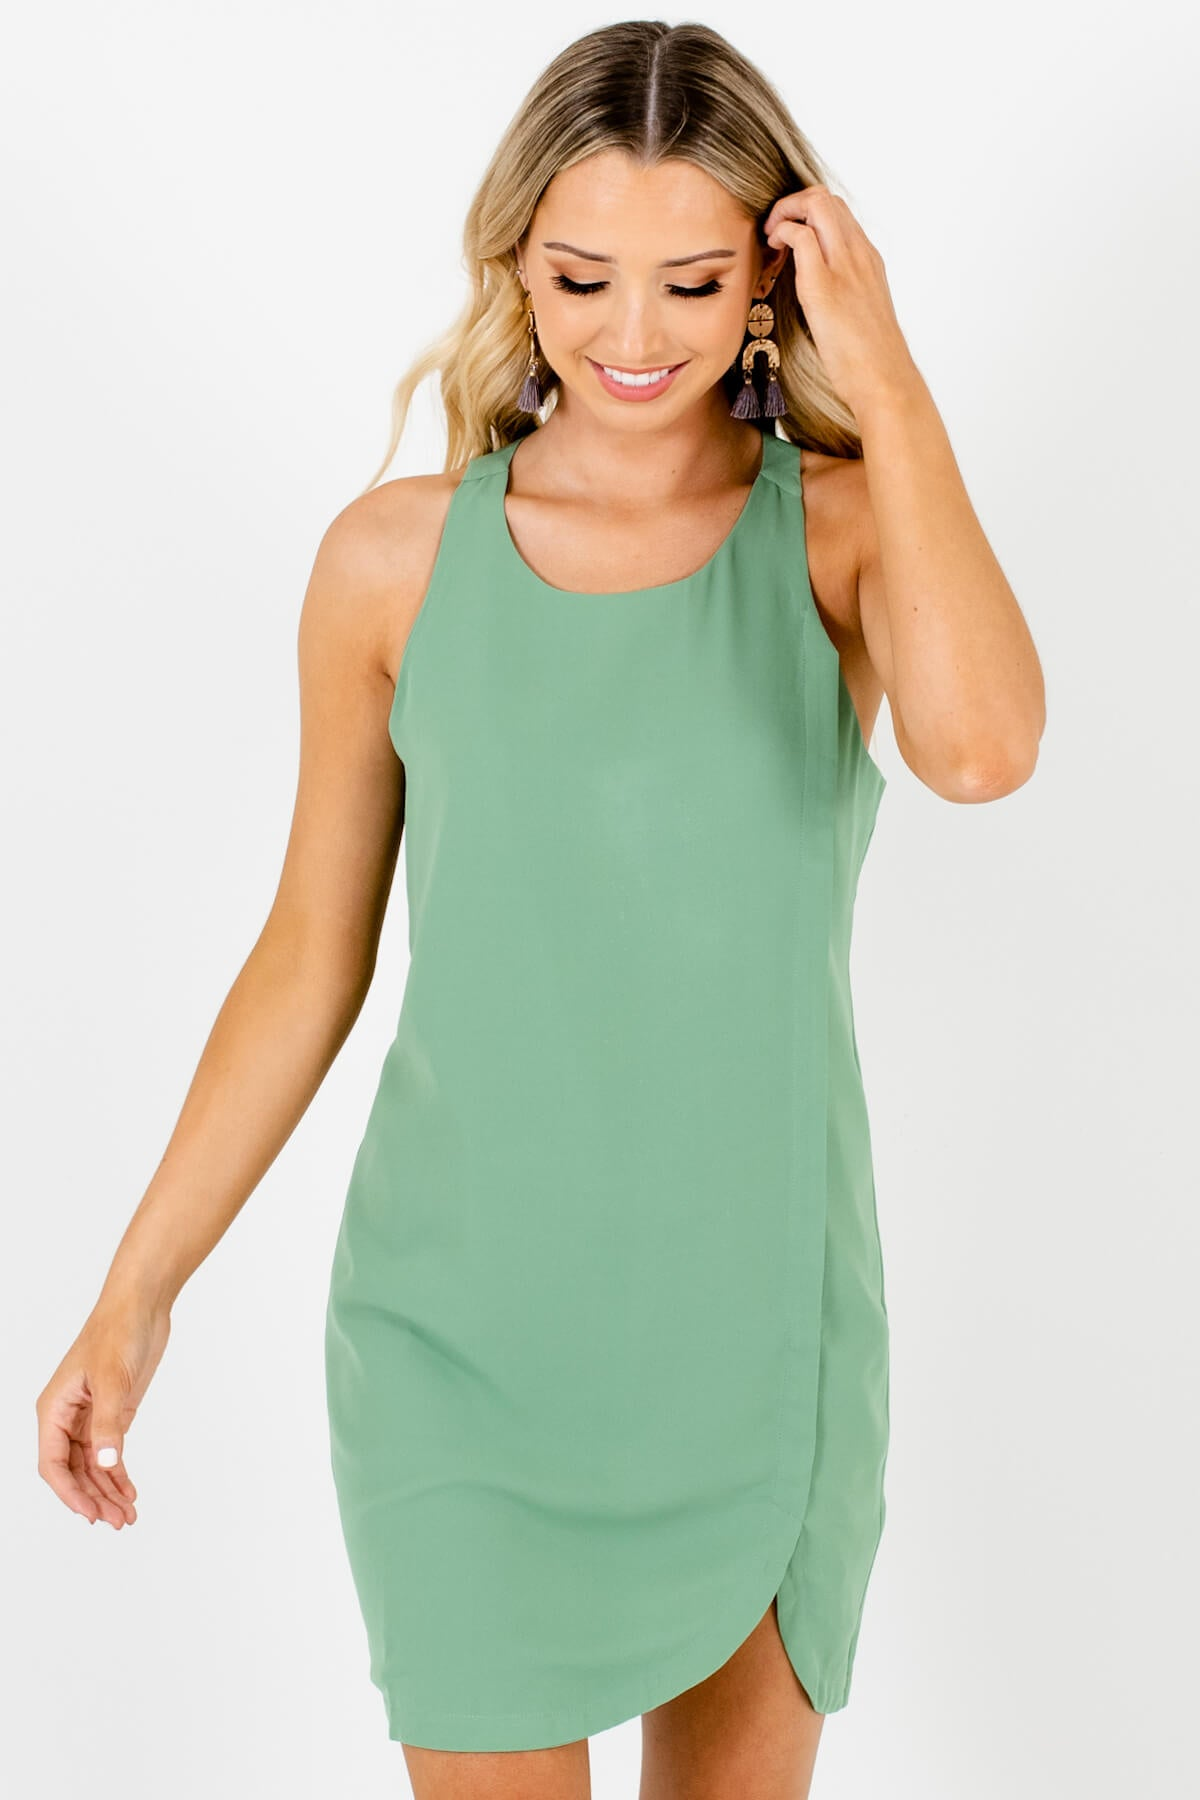 Light Green Asymmetrical Seam Detail Mini Dresses for Women